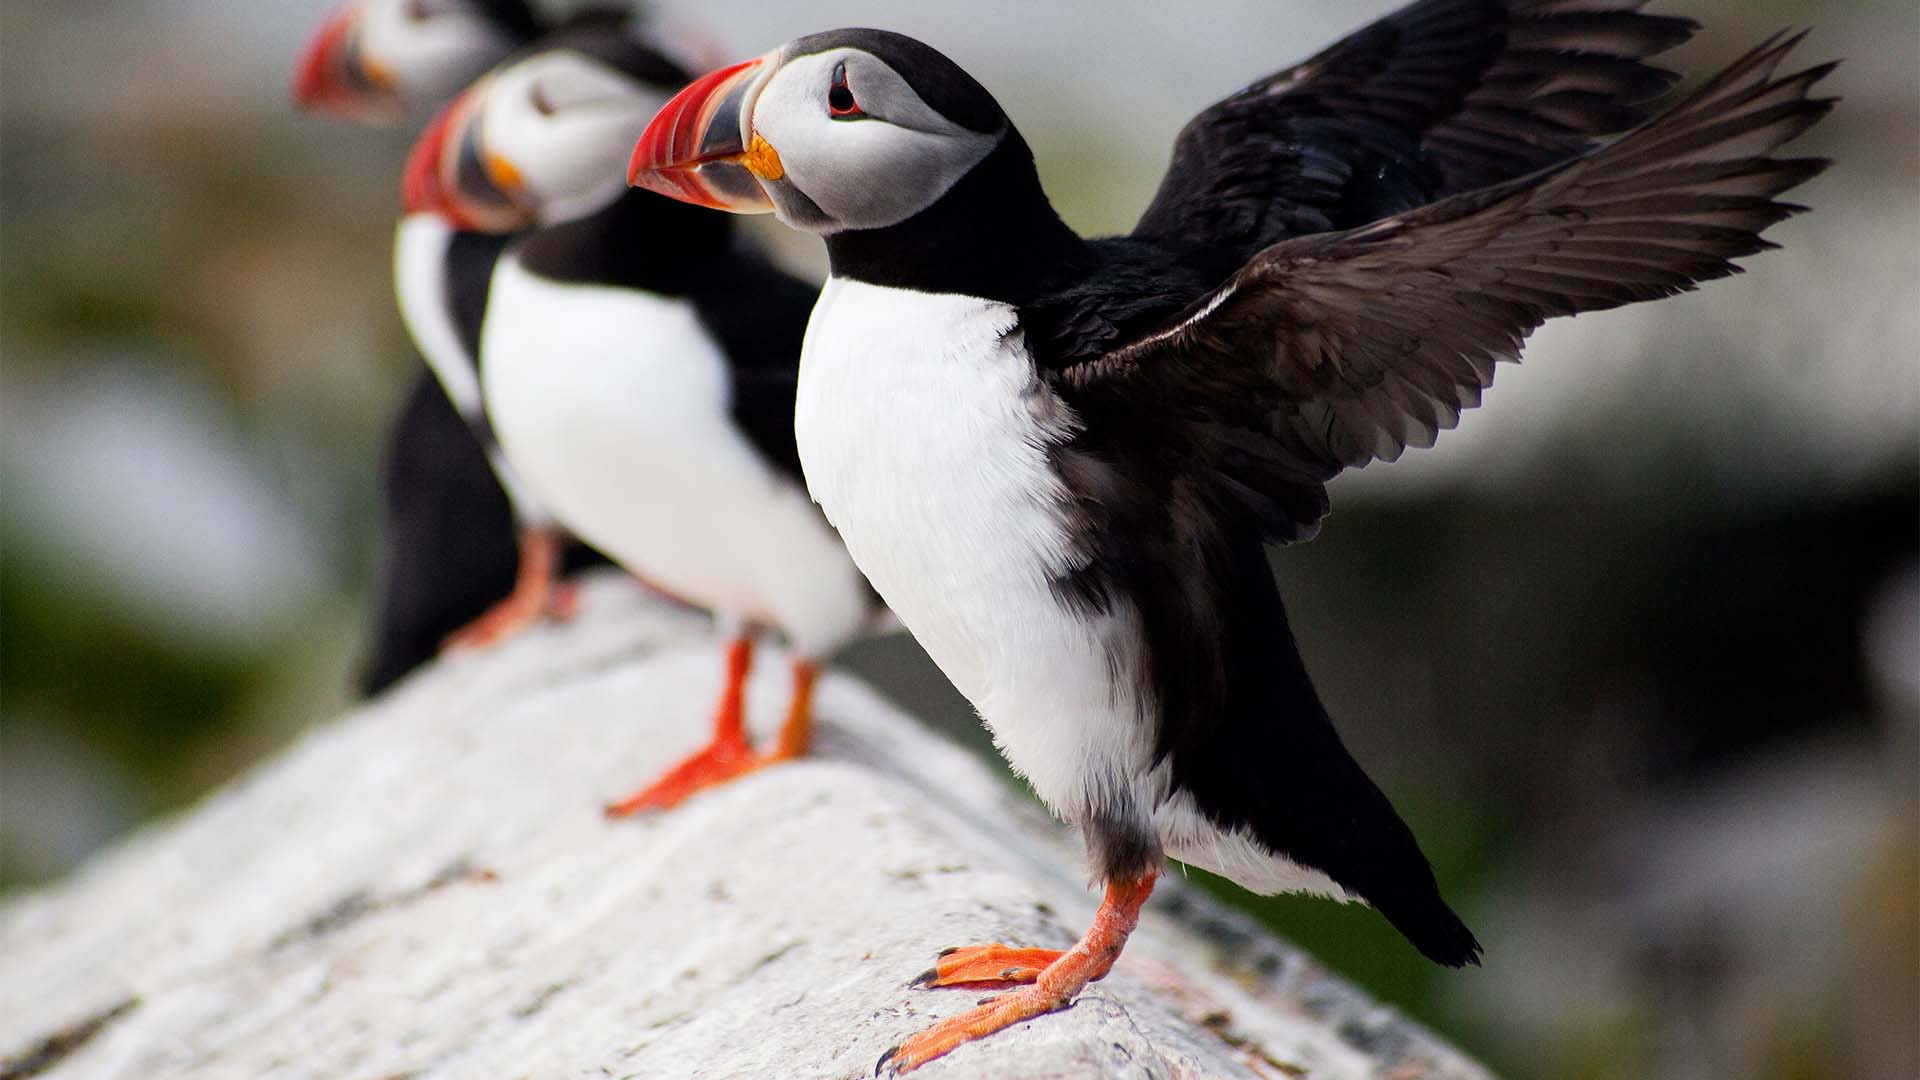 Puffins off the coast of Iceland